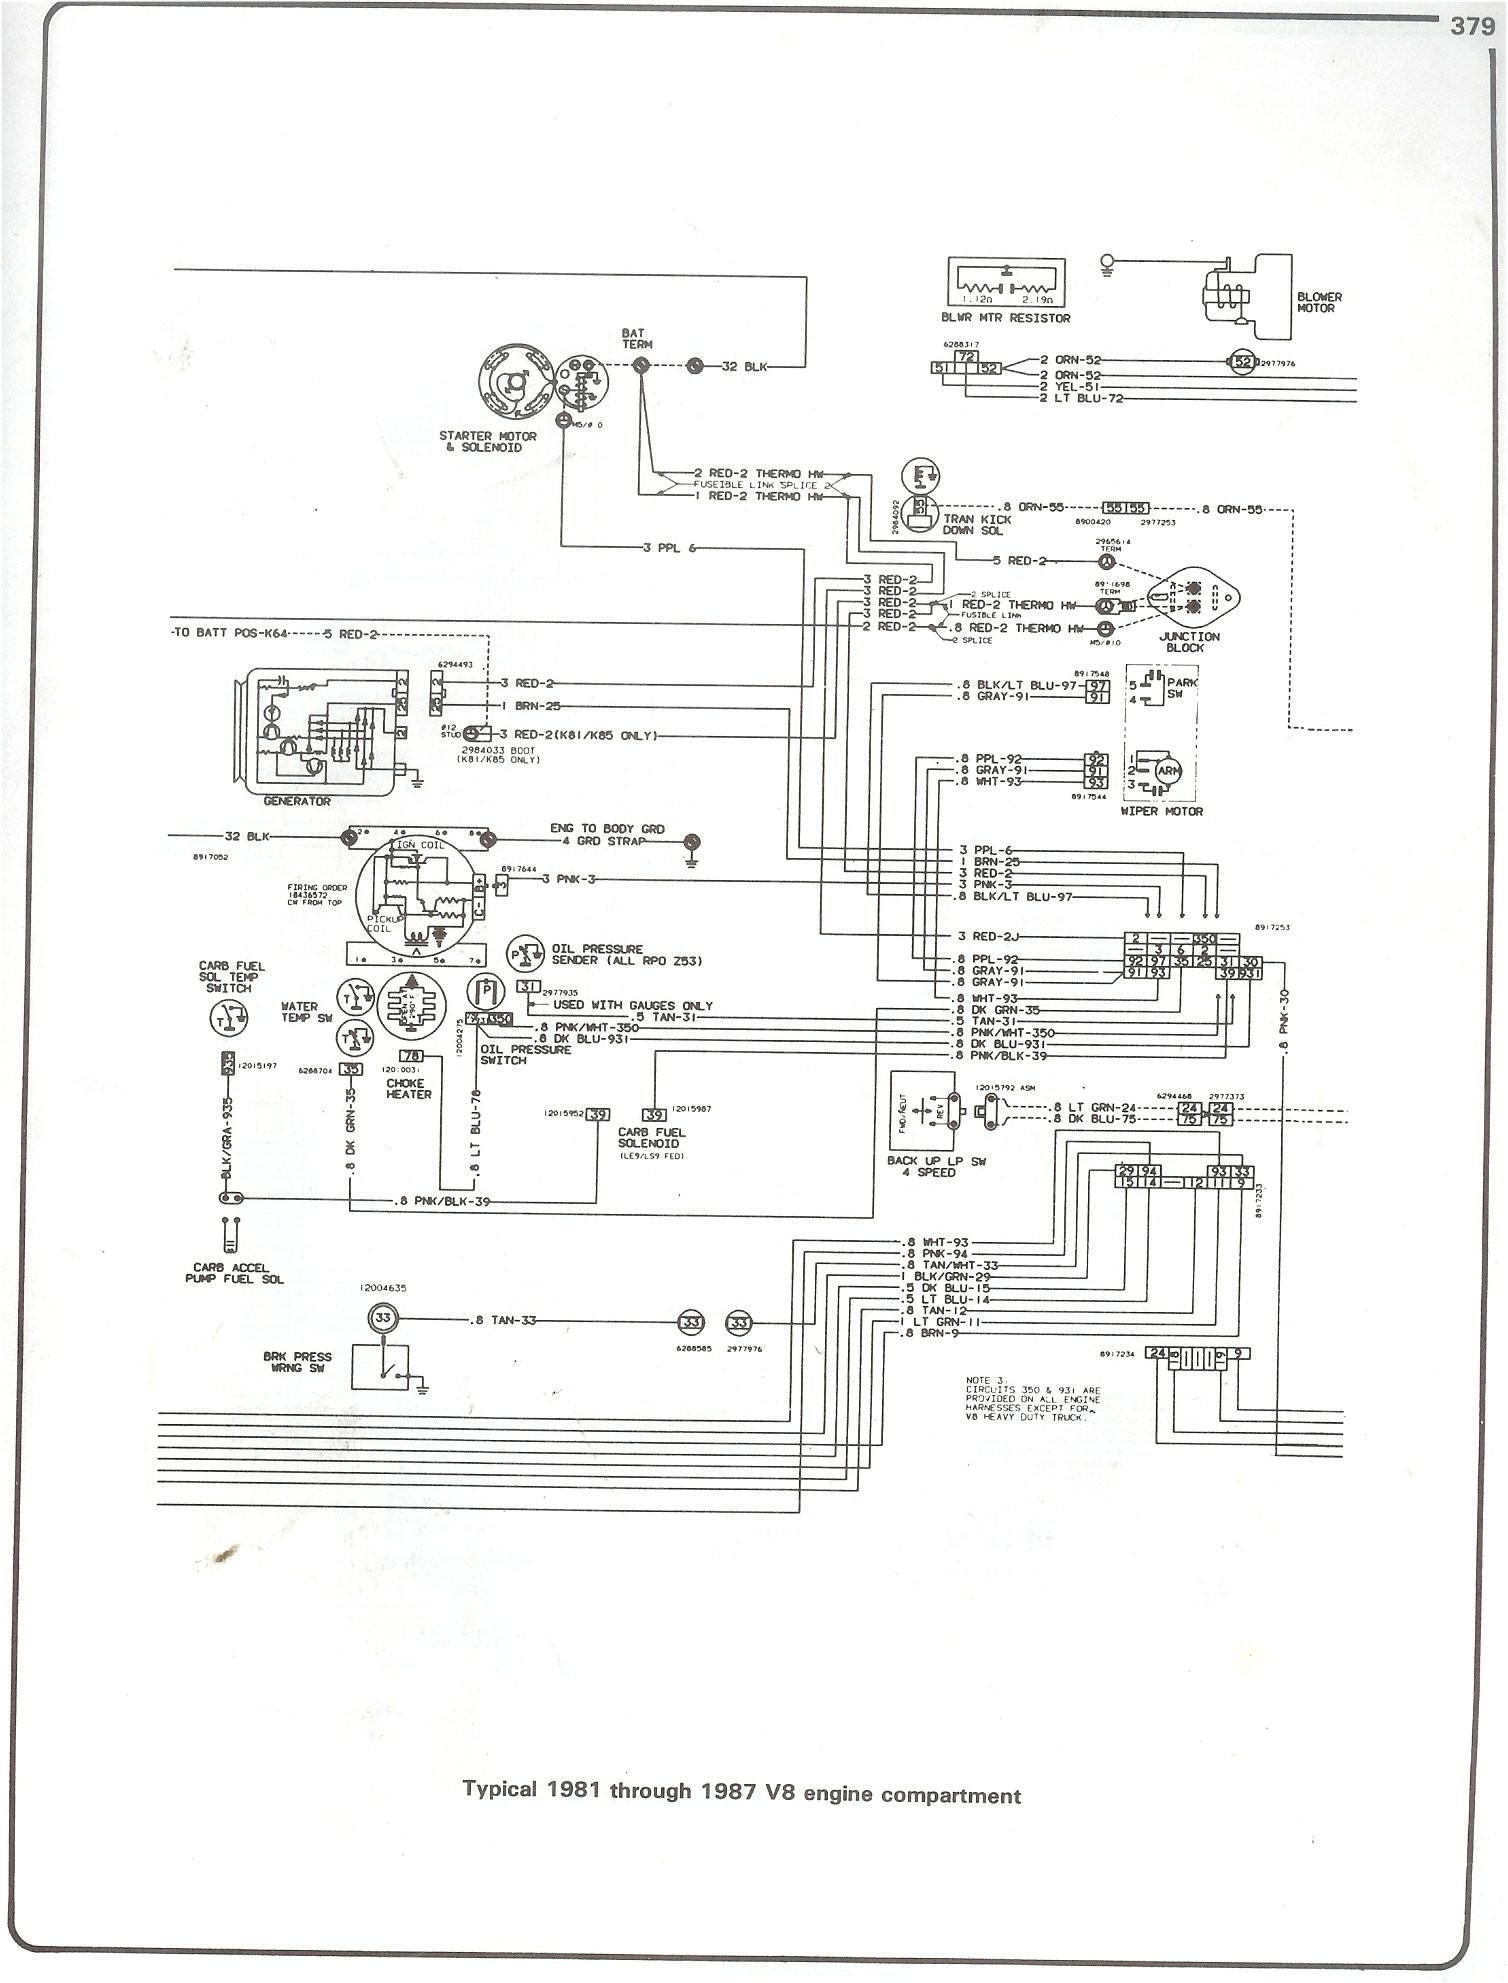 1983 Chevy Truck Wiring Diagram Wiring 79master 1of9 for 79 Chevy Truck Diagram Wiring Diagram Of 1983 Chevy Truck Wiring Diagram